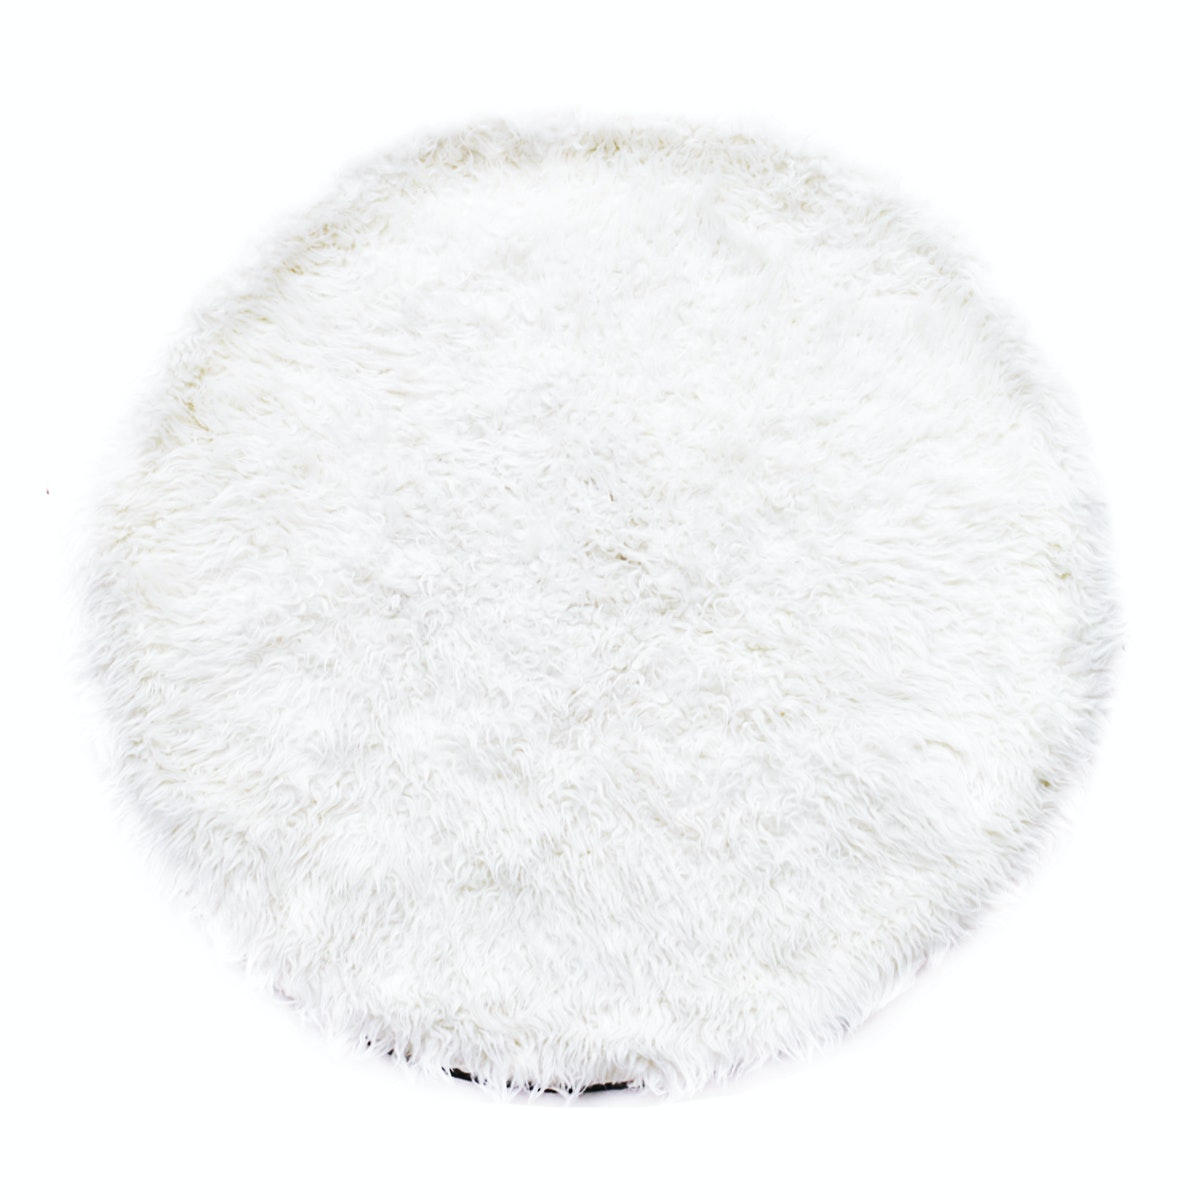 Glerry Home Decor Round White Fur Rug 100 cm